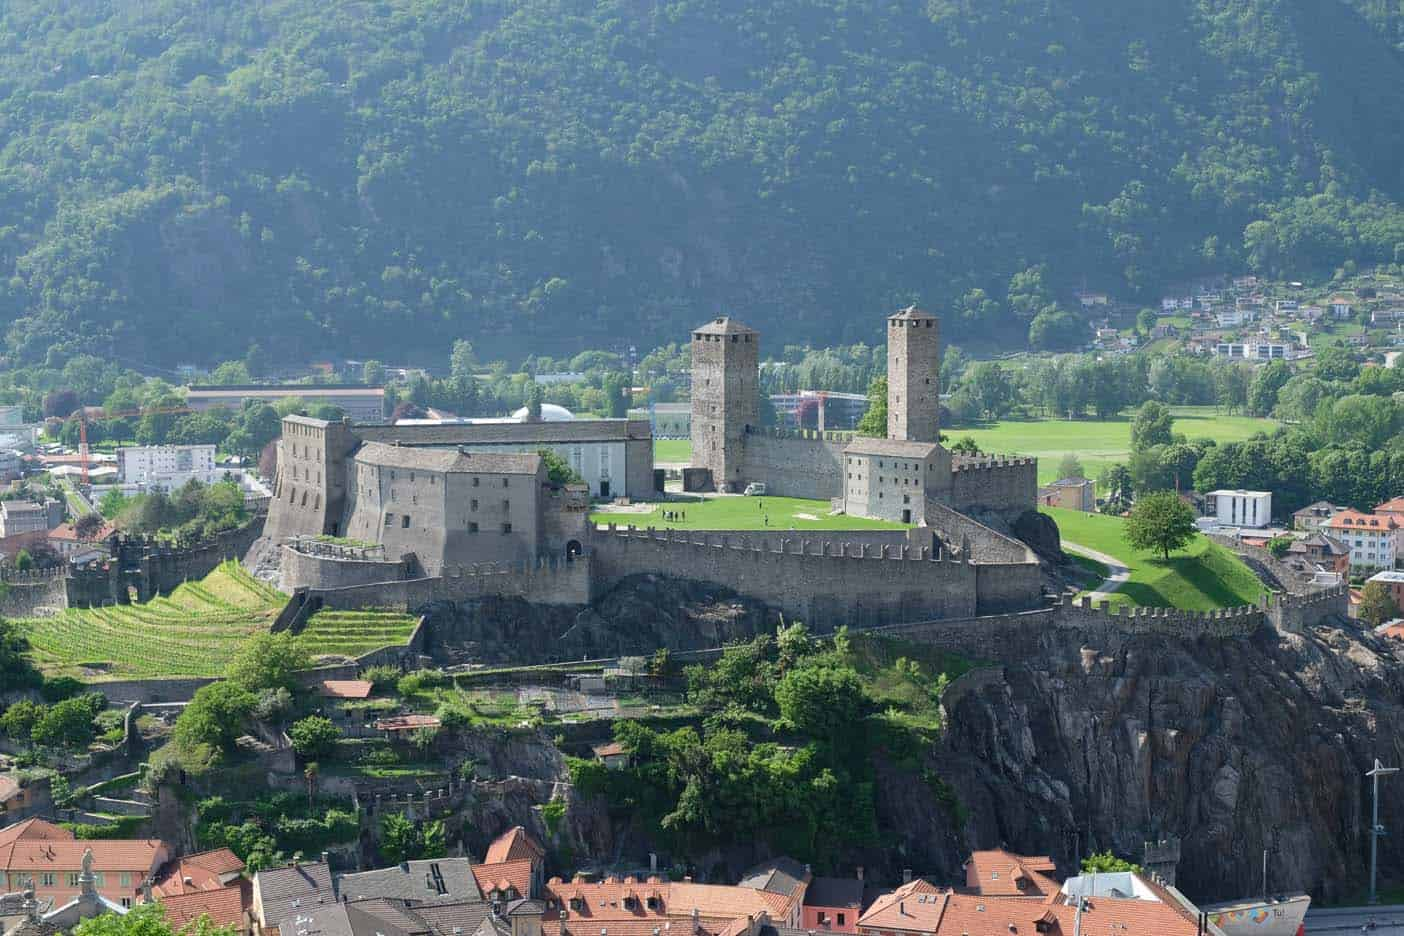 Castlegrande bellinzona kasteel